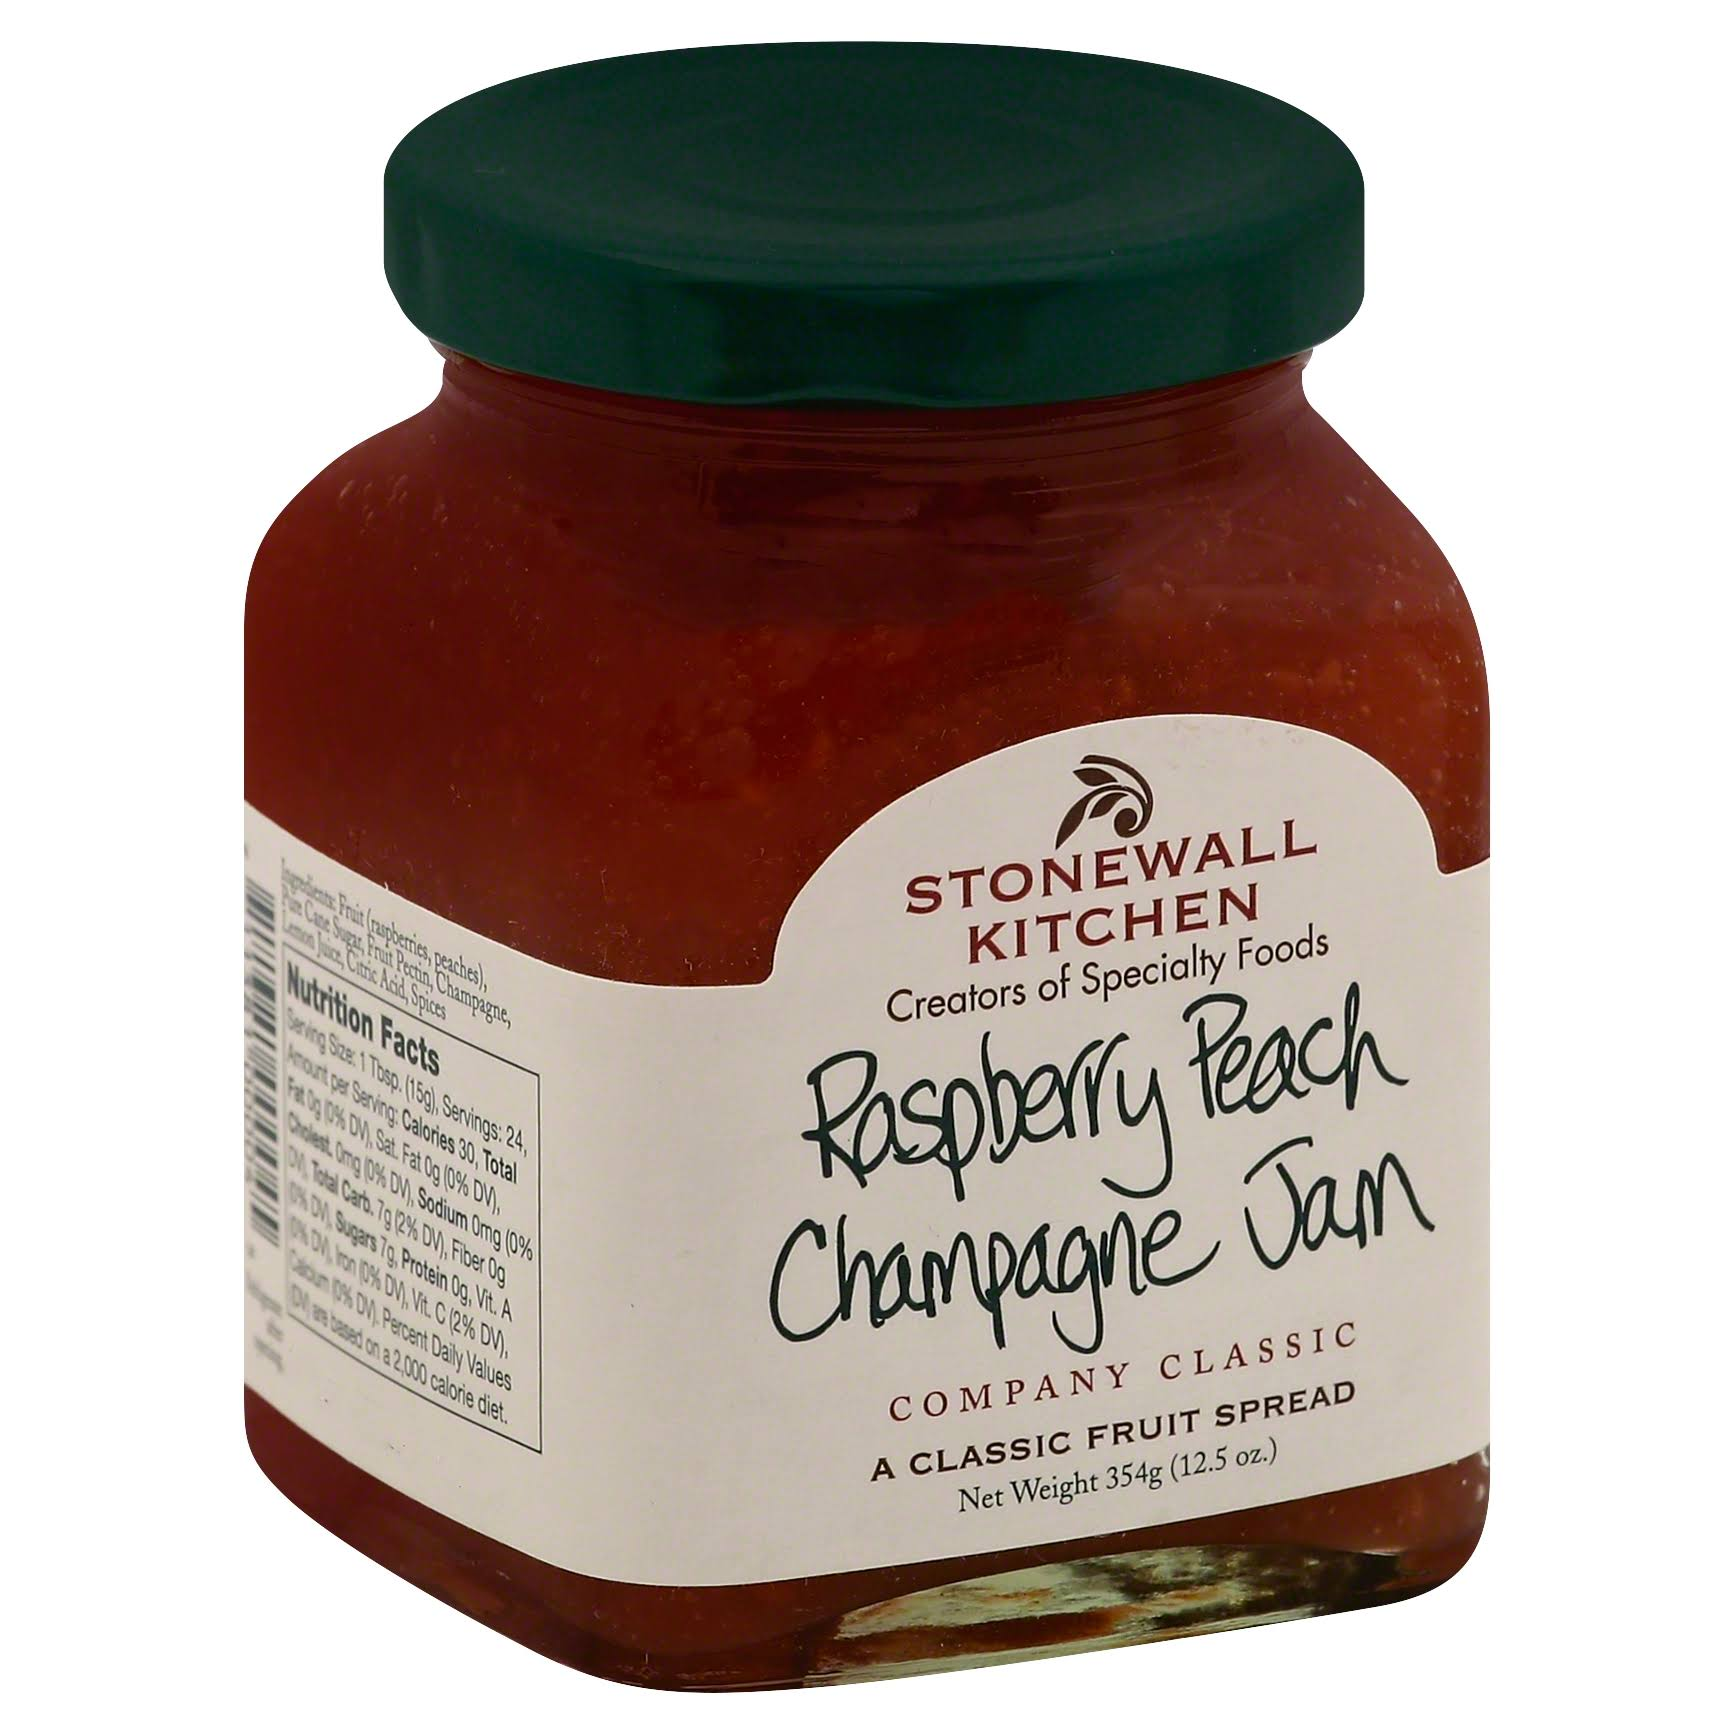 Stonewall Kitchen Jam - Raspberry Peach Champagne, 354g